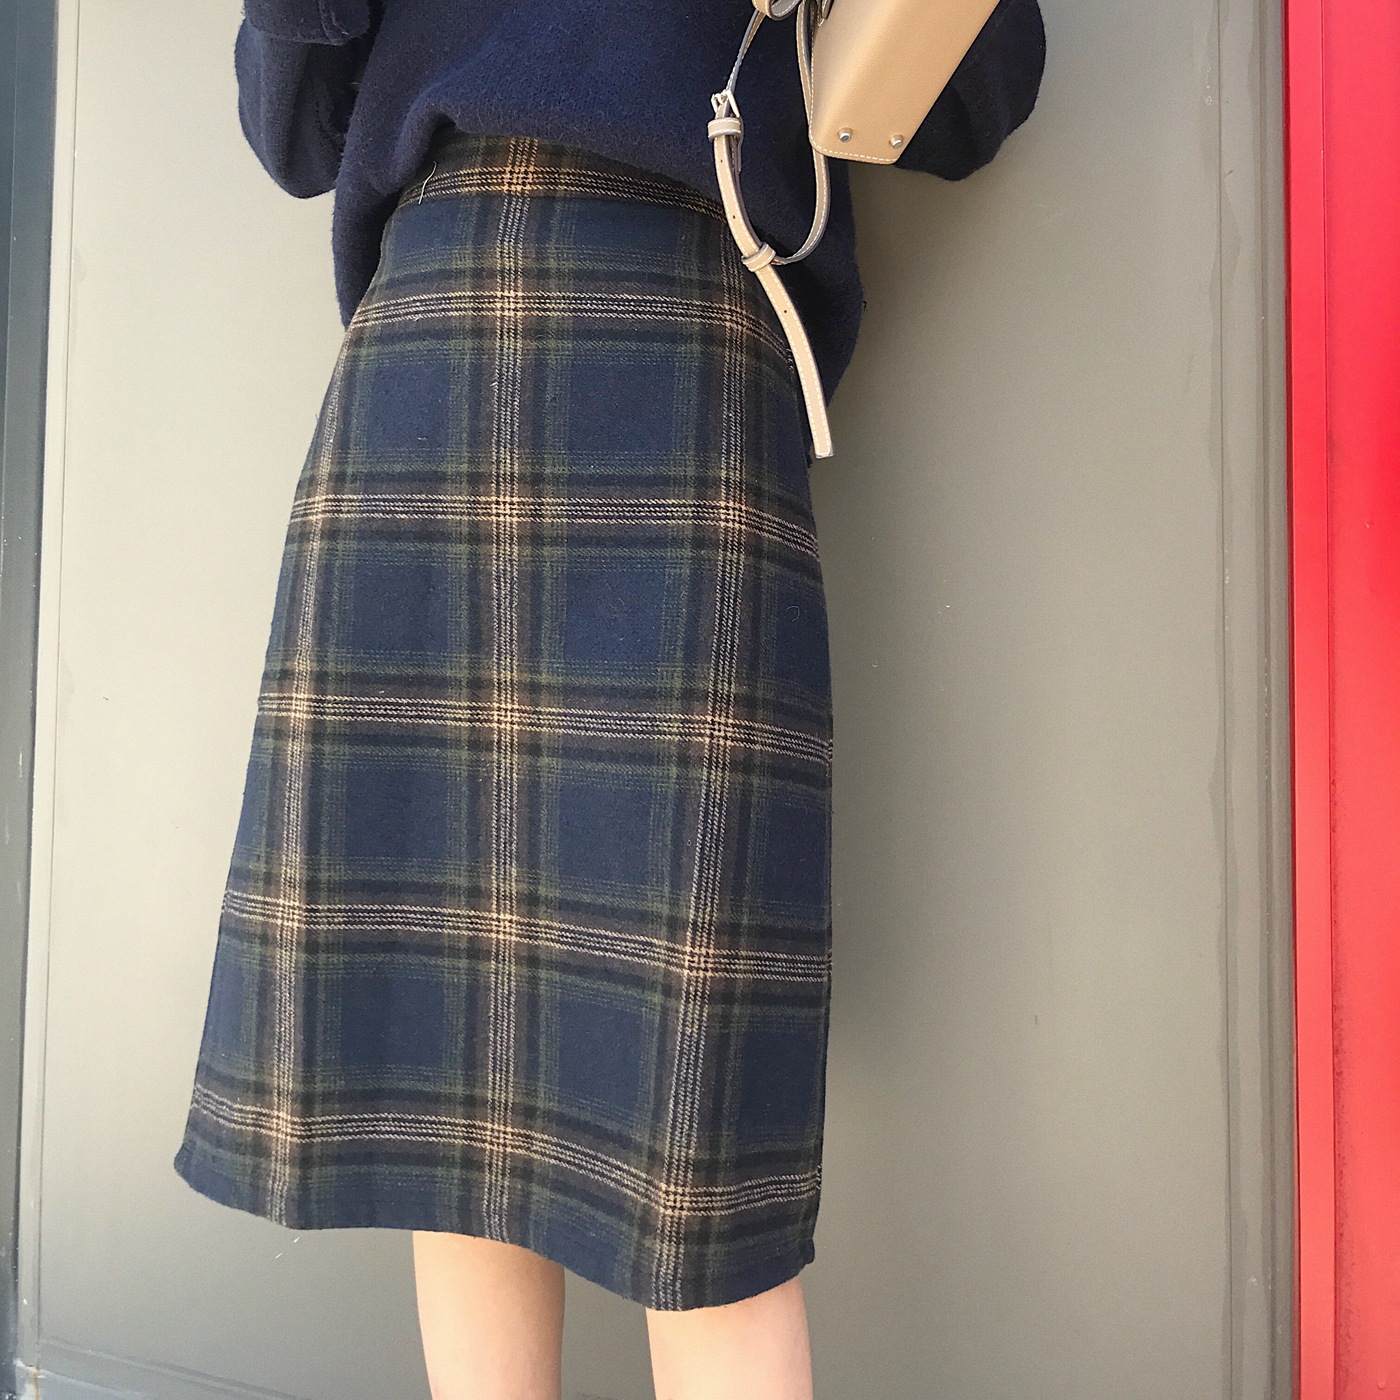 2019 Autumn And Winter Retro High-waisted Plaid Woolen Skirt Student Thick Mid-length